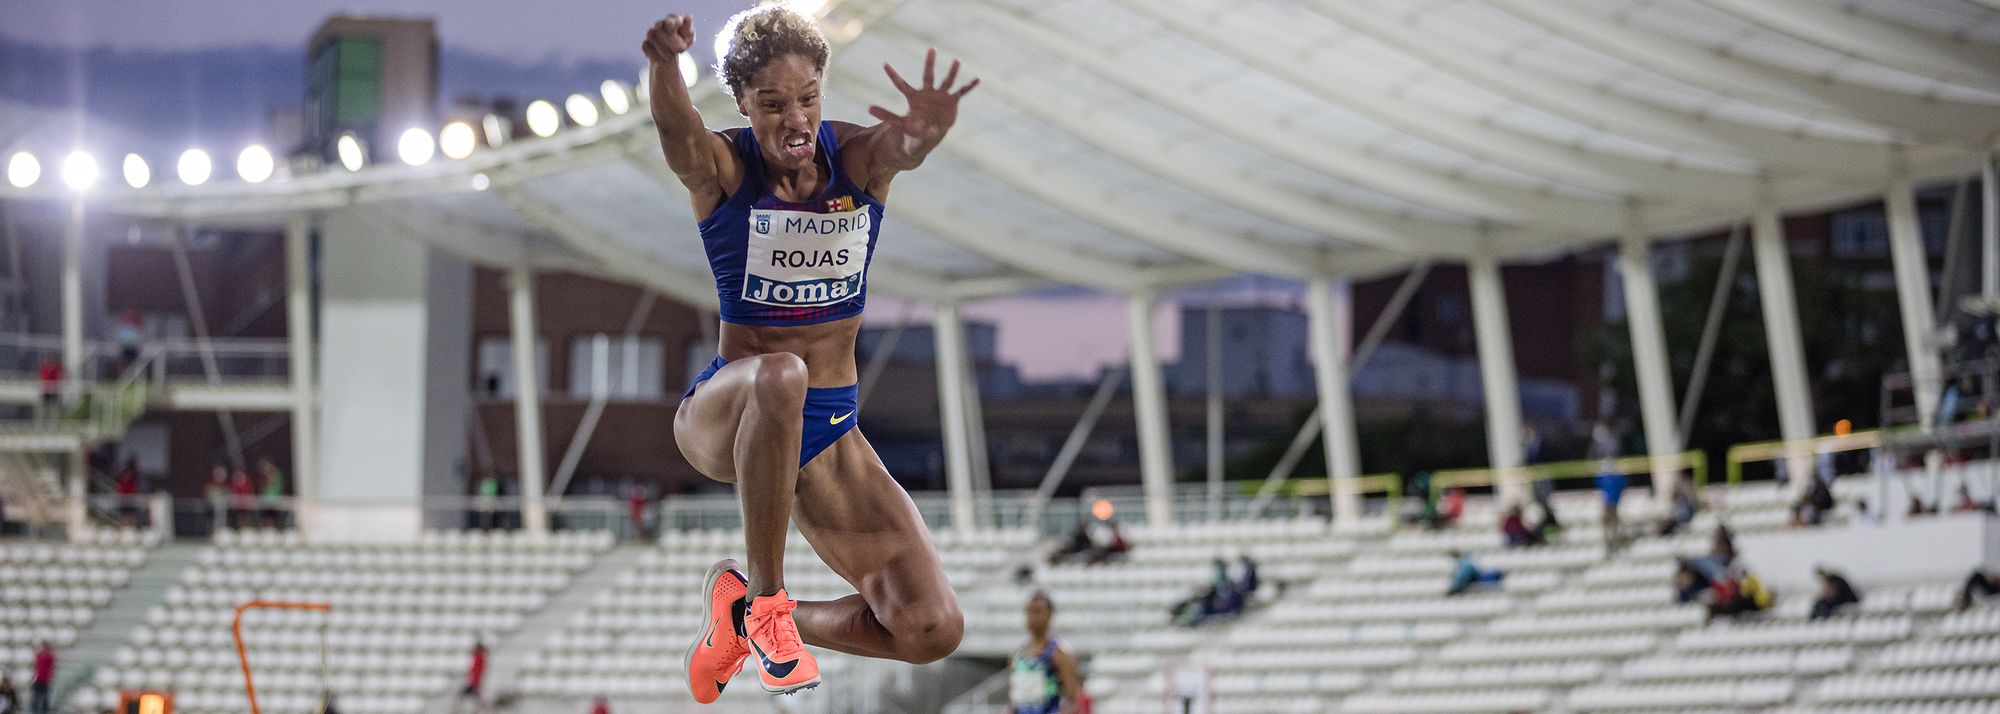 The triple jump provided the main highlights of the Meeting Madrid, a World Athletics Continental Tour Silver meeting, in the Spanish capital on Saturday (19).